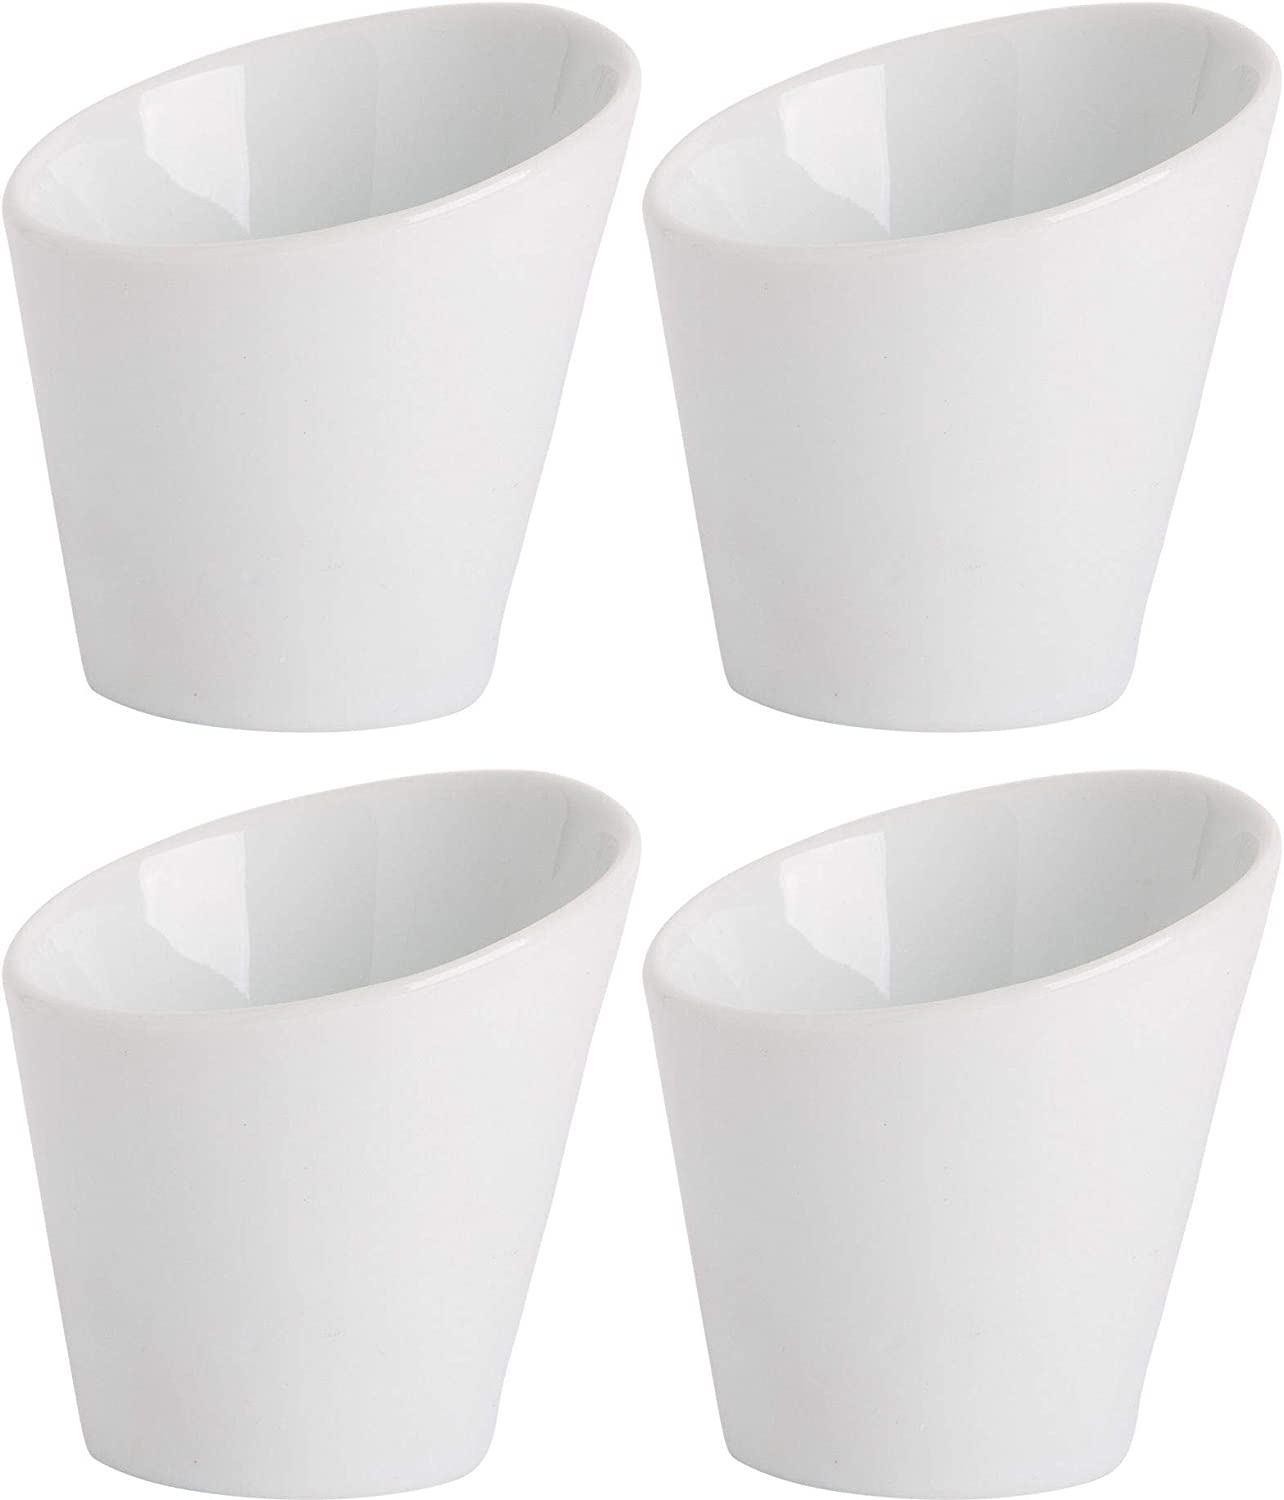 Home Essentials 15240 Fiddle and Fern Cone Shape Mini Taster, Set of 4, 3-inch Height